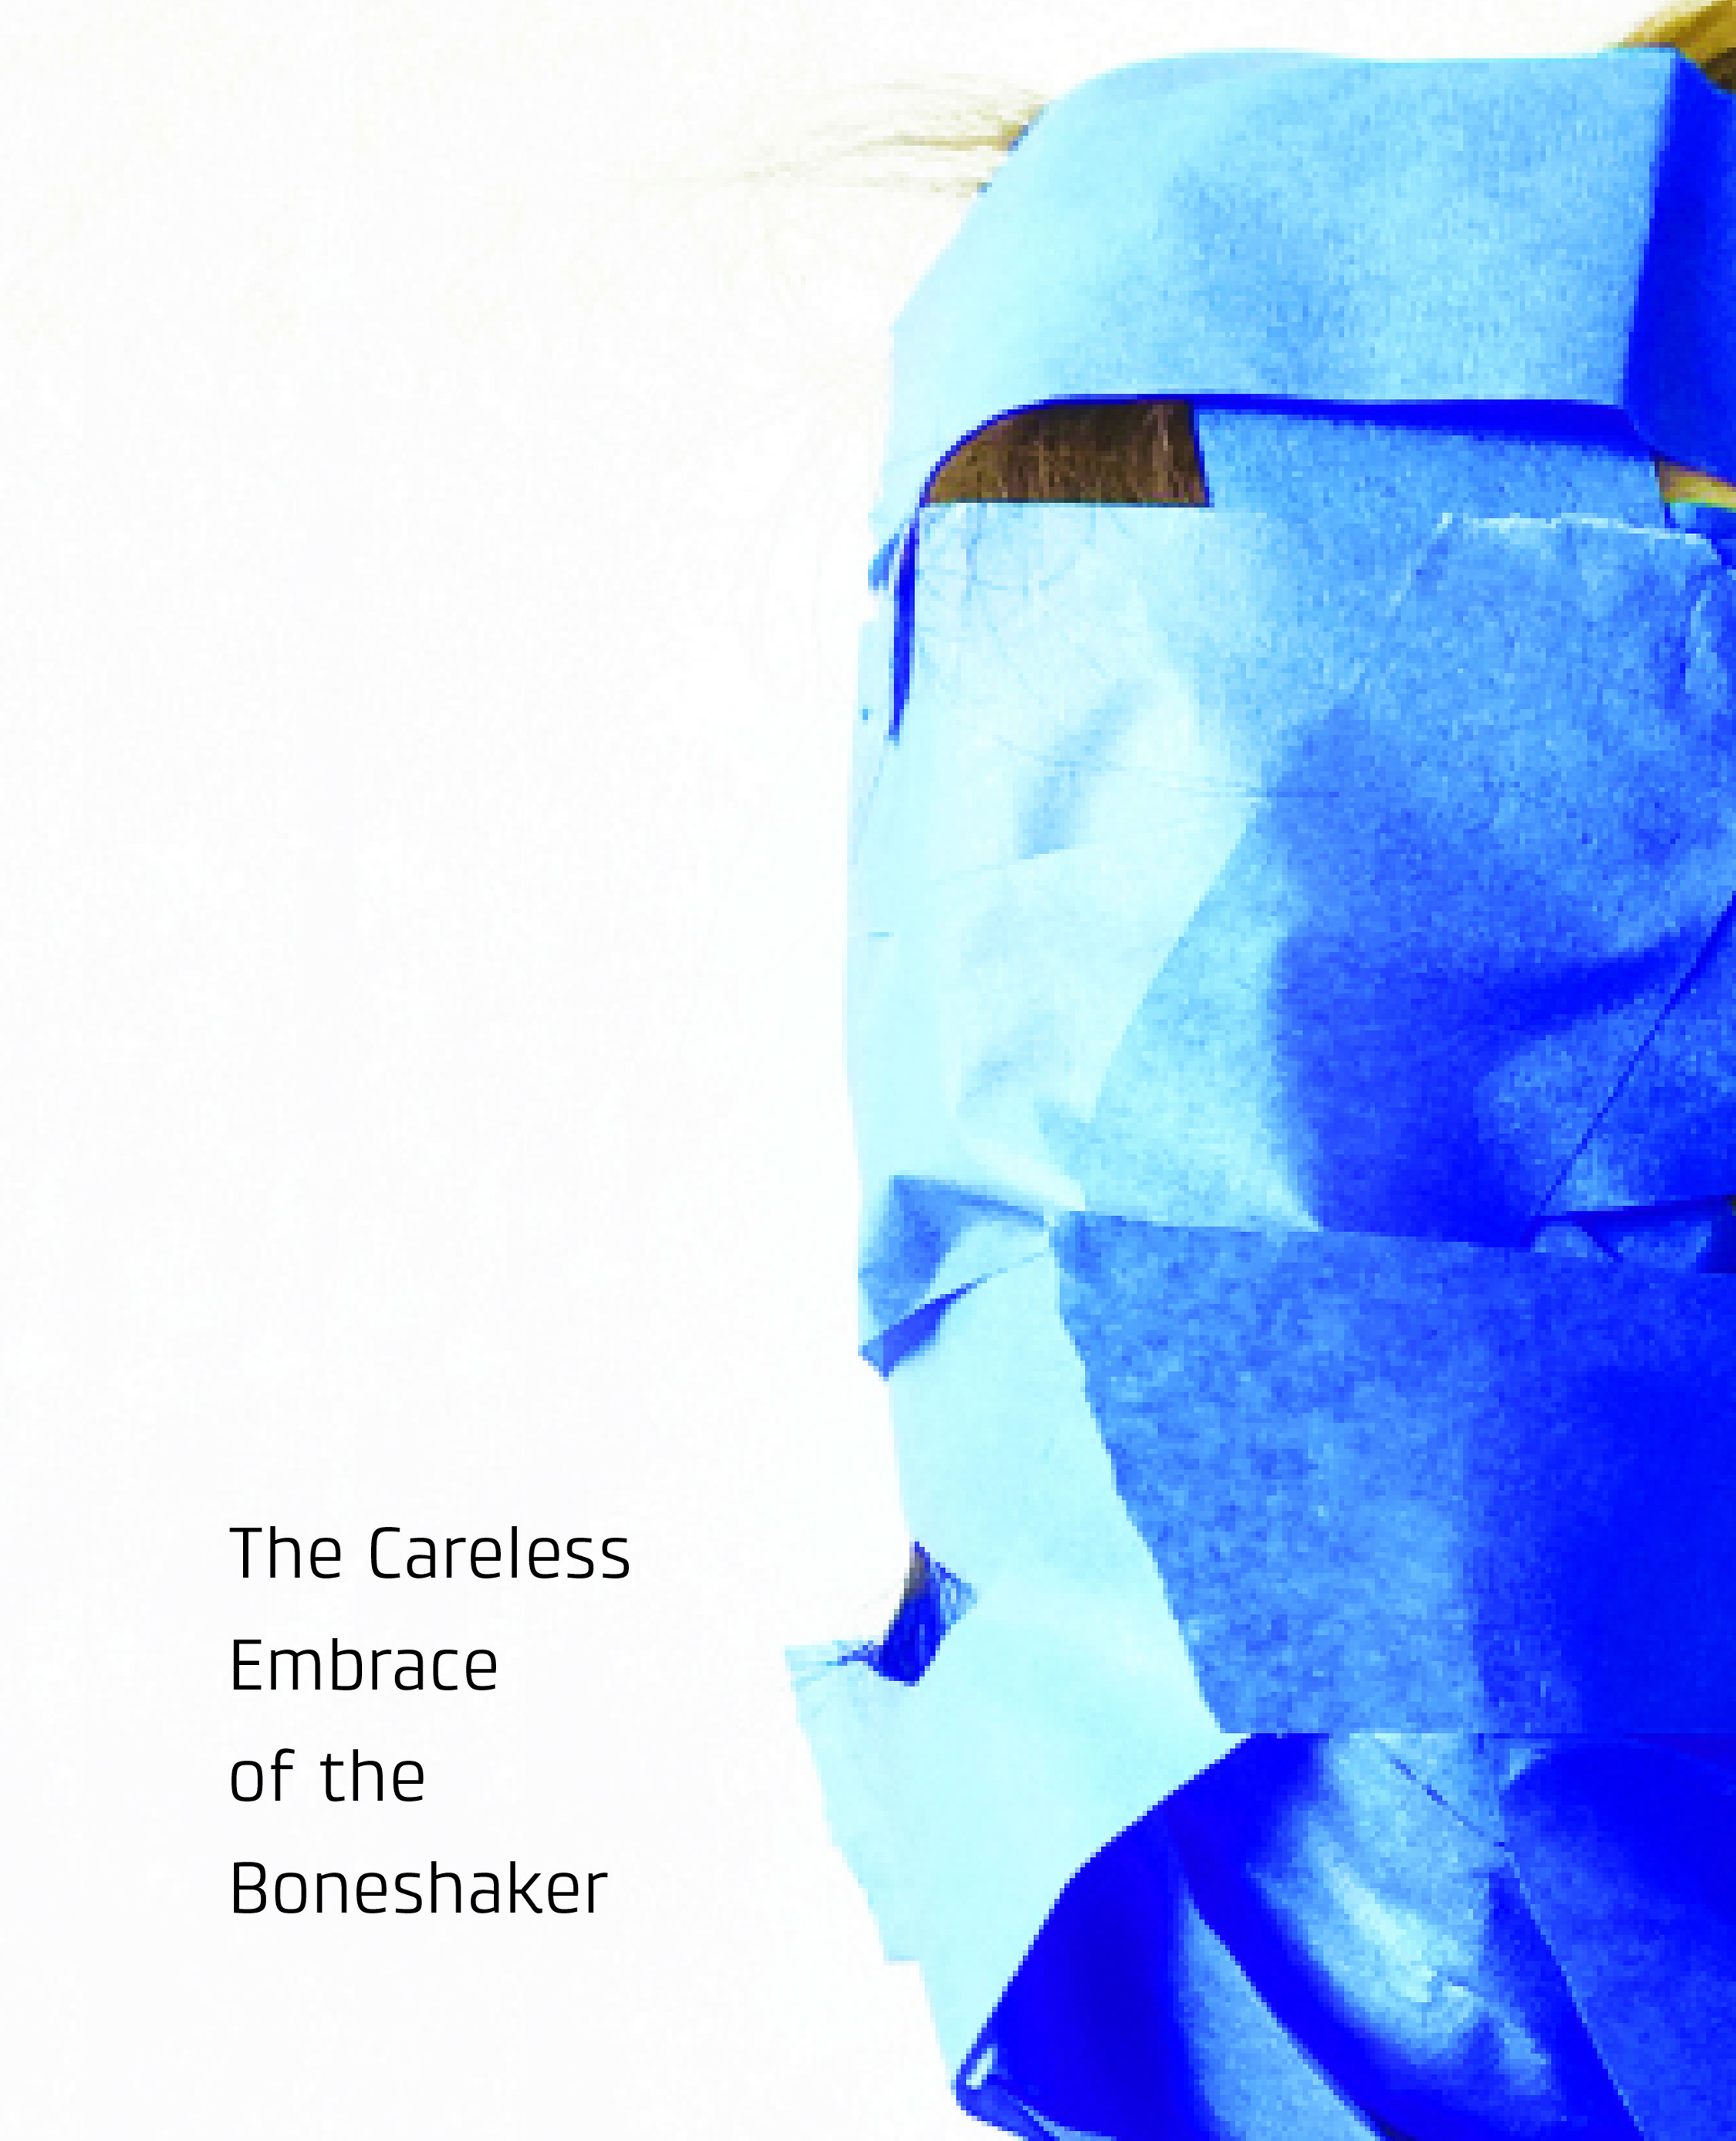 The-Careless-Embrace-of-the-Boneshaker-front-cover.jpg